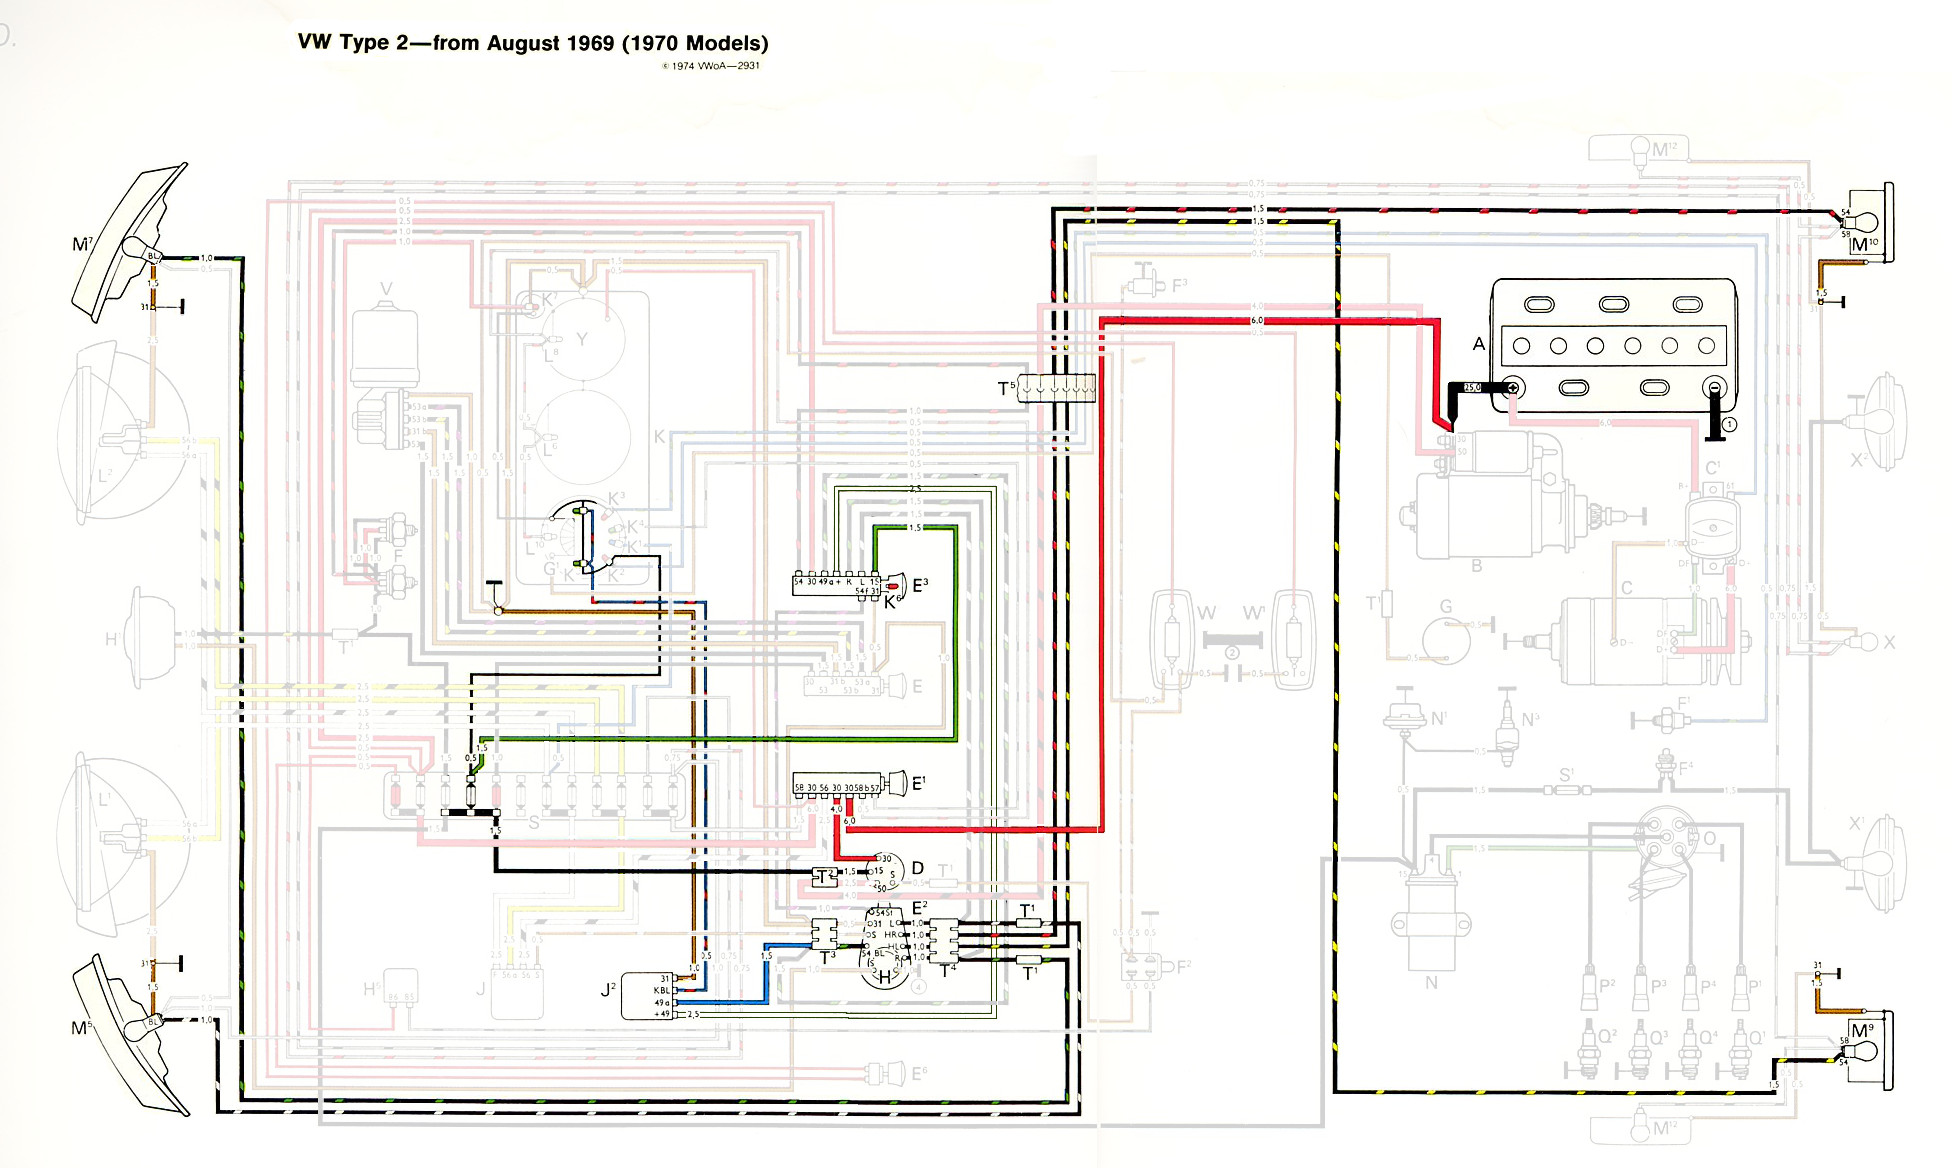 1970bus_signals 1970 vw beetle wiring diagram 1967 vw beetle wiring diagram Wiring Harness Diagram at mifinder.co